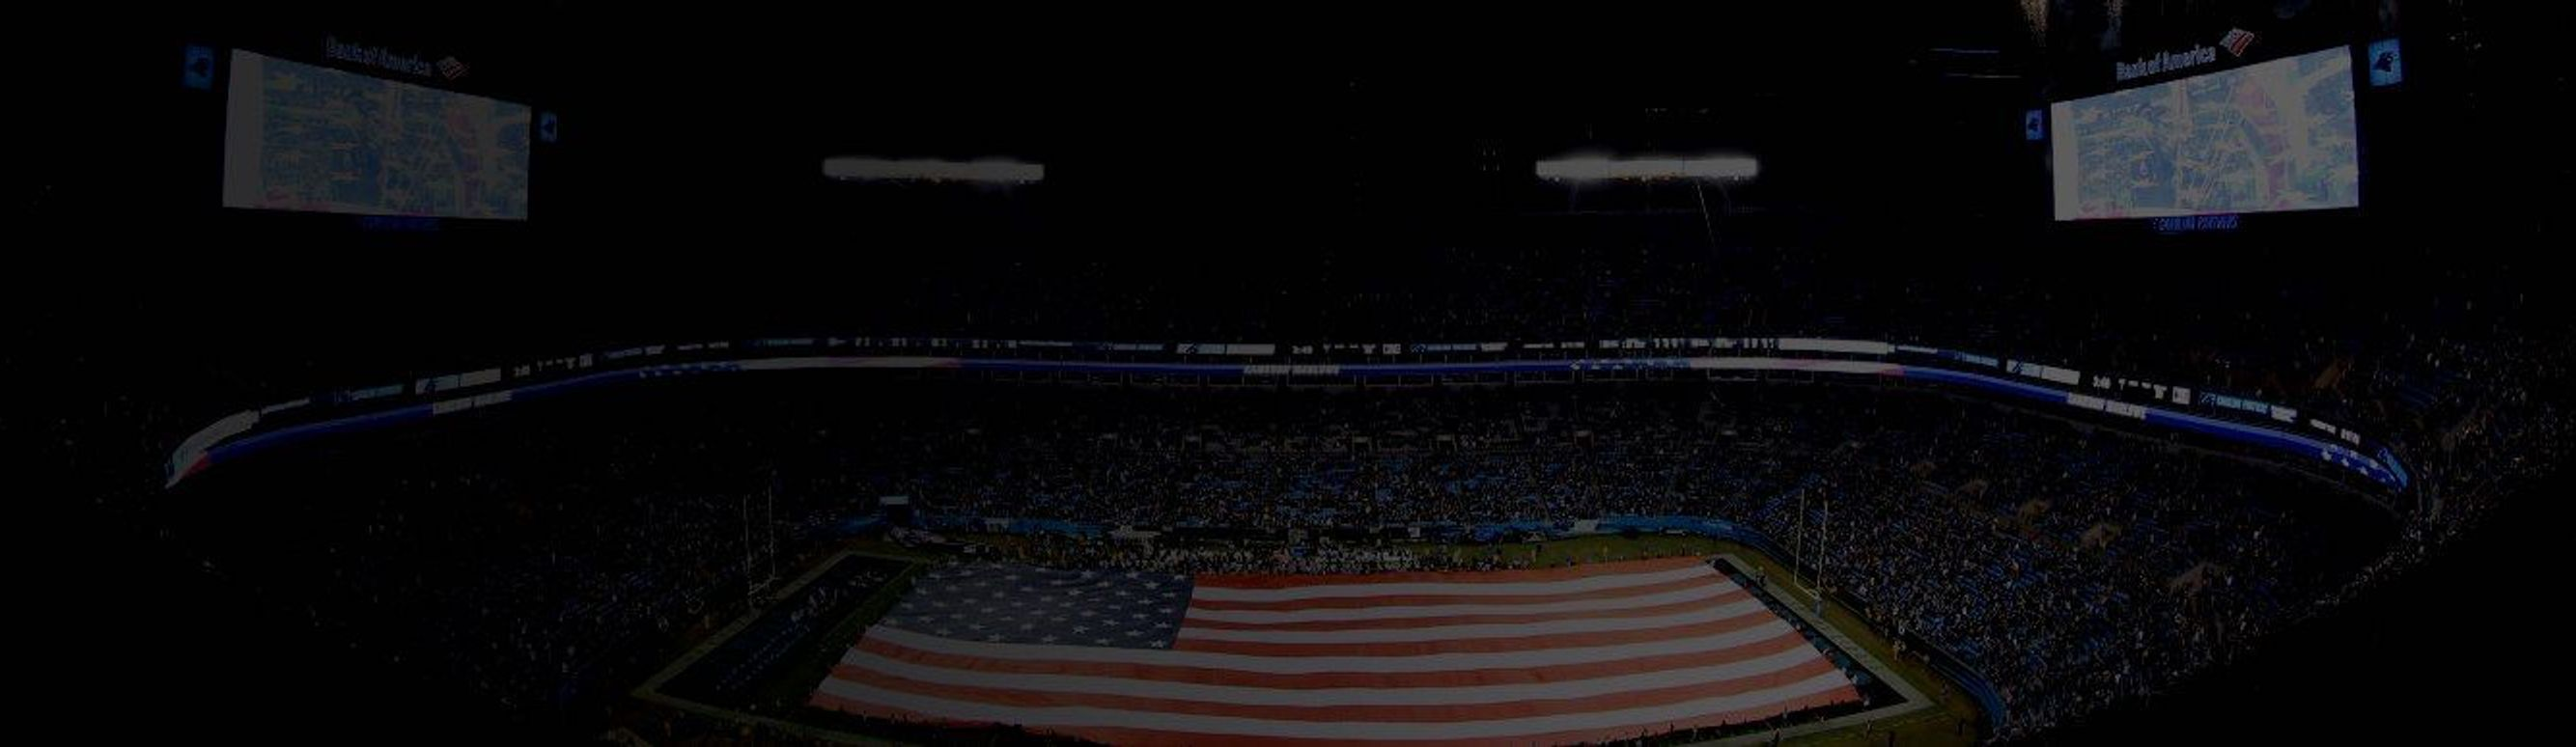 A halftime flag display at Bank of America Stadium